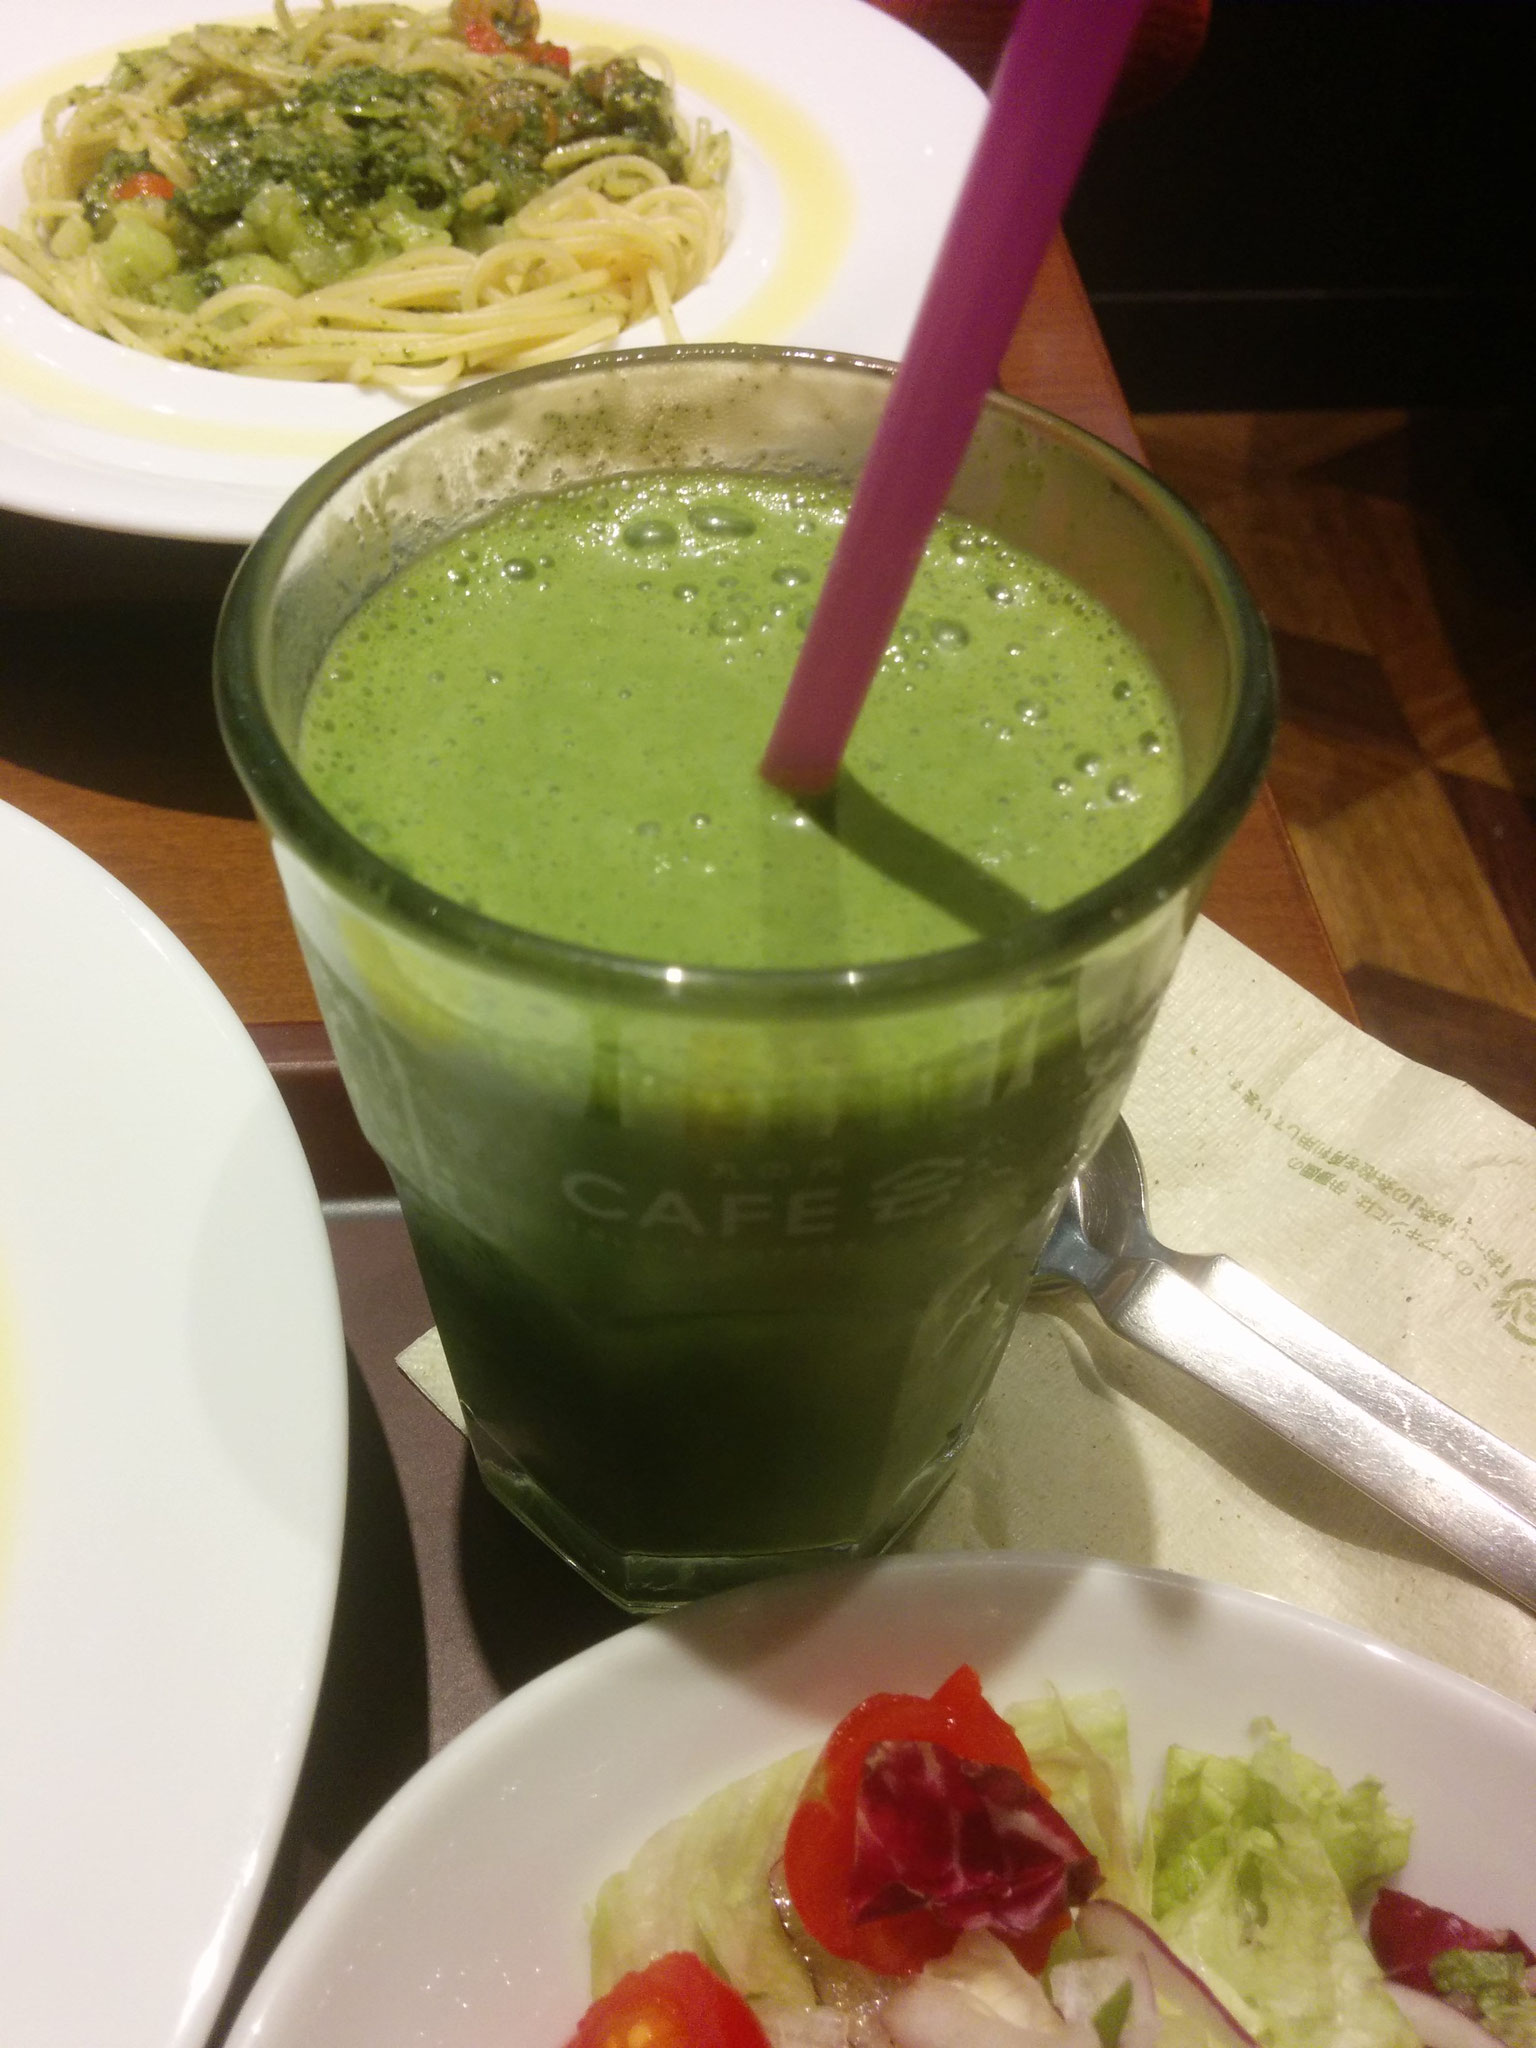 best matcha drink I've had so far: Matcha shake <3